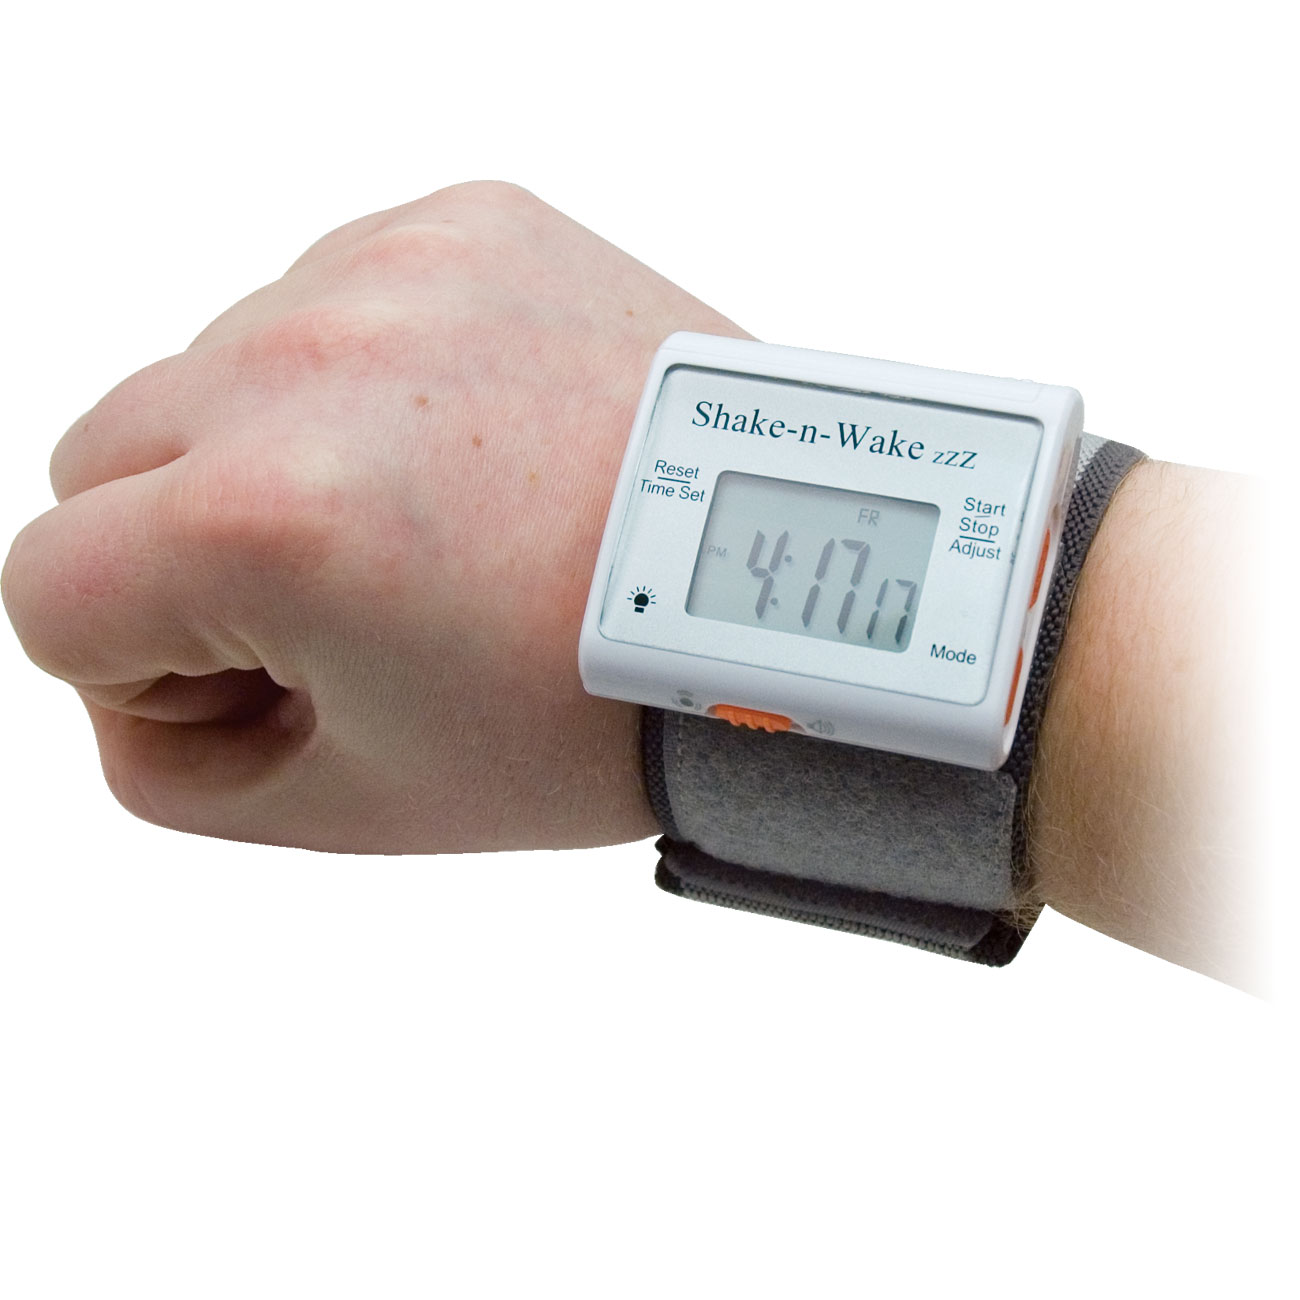 Shake-n-Wake ZZZ Vibrating Alarm Clock Watch